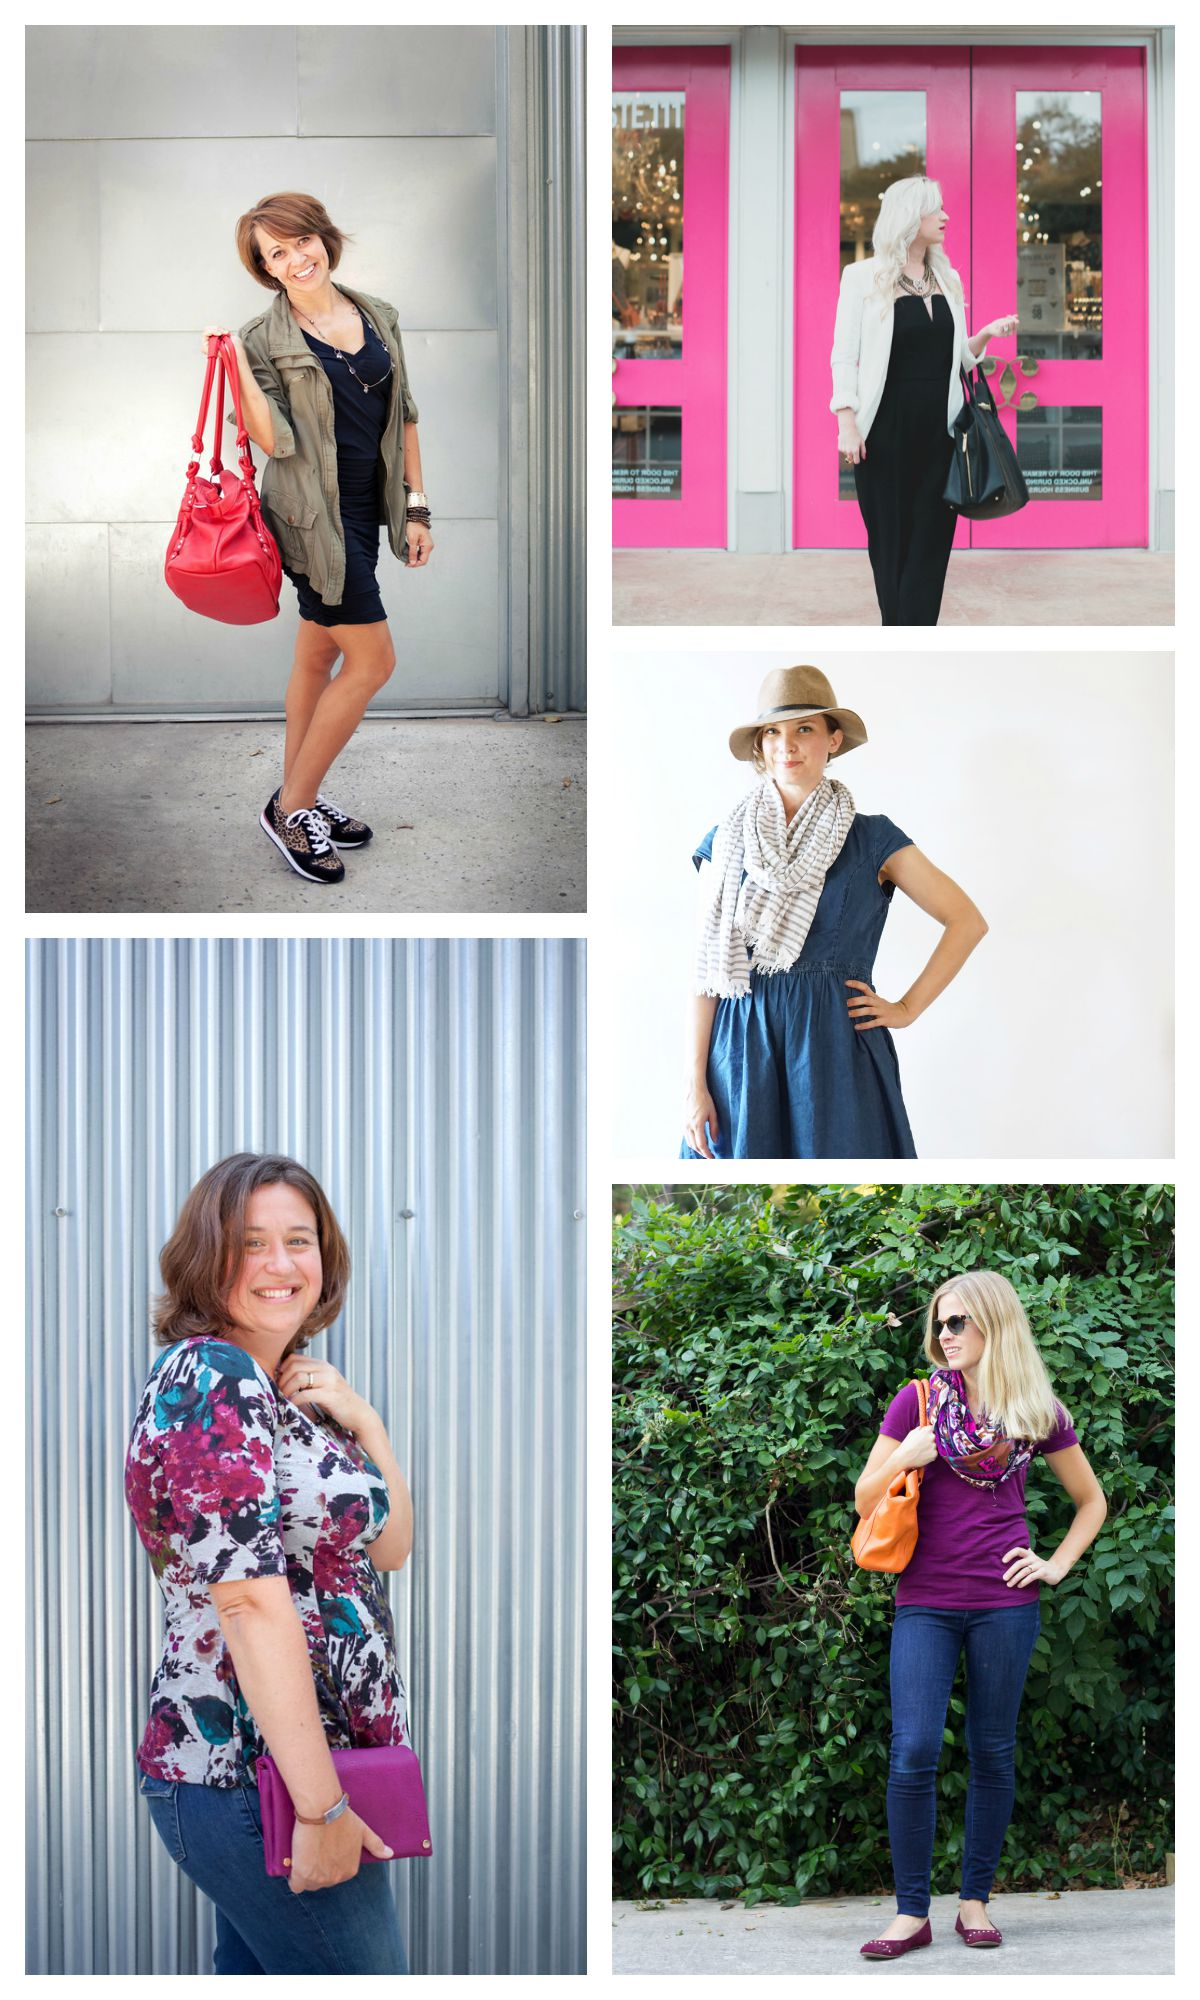 We asked 5 moms what items were on their must-have list for fall 2105 and here's what they told us. I agree! I want all of these things in my closet